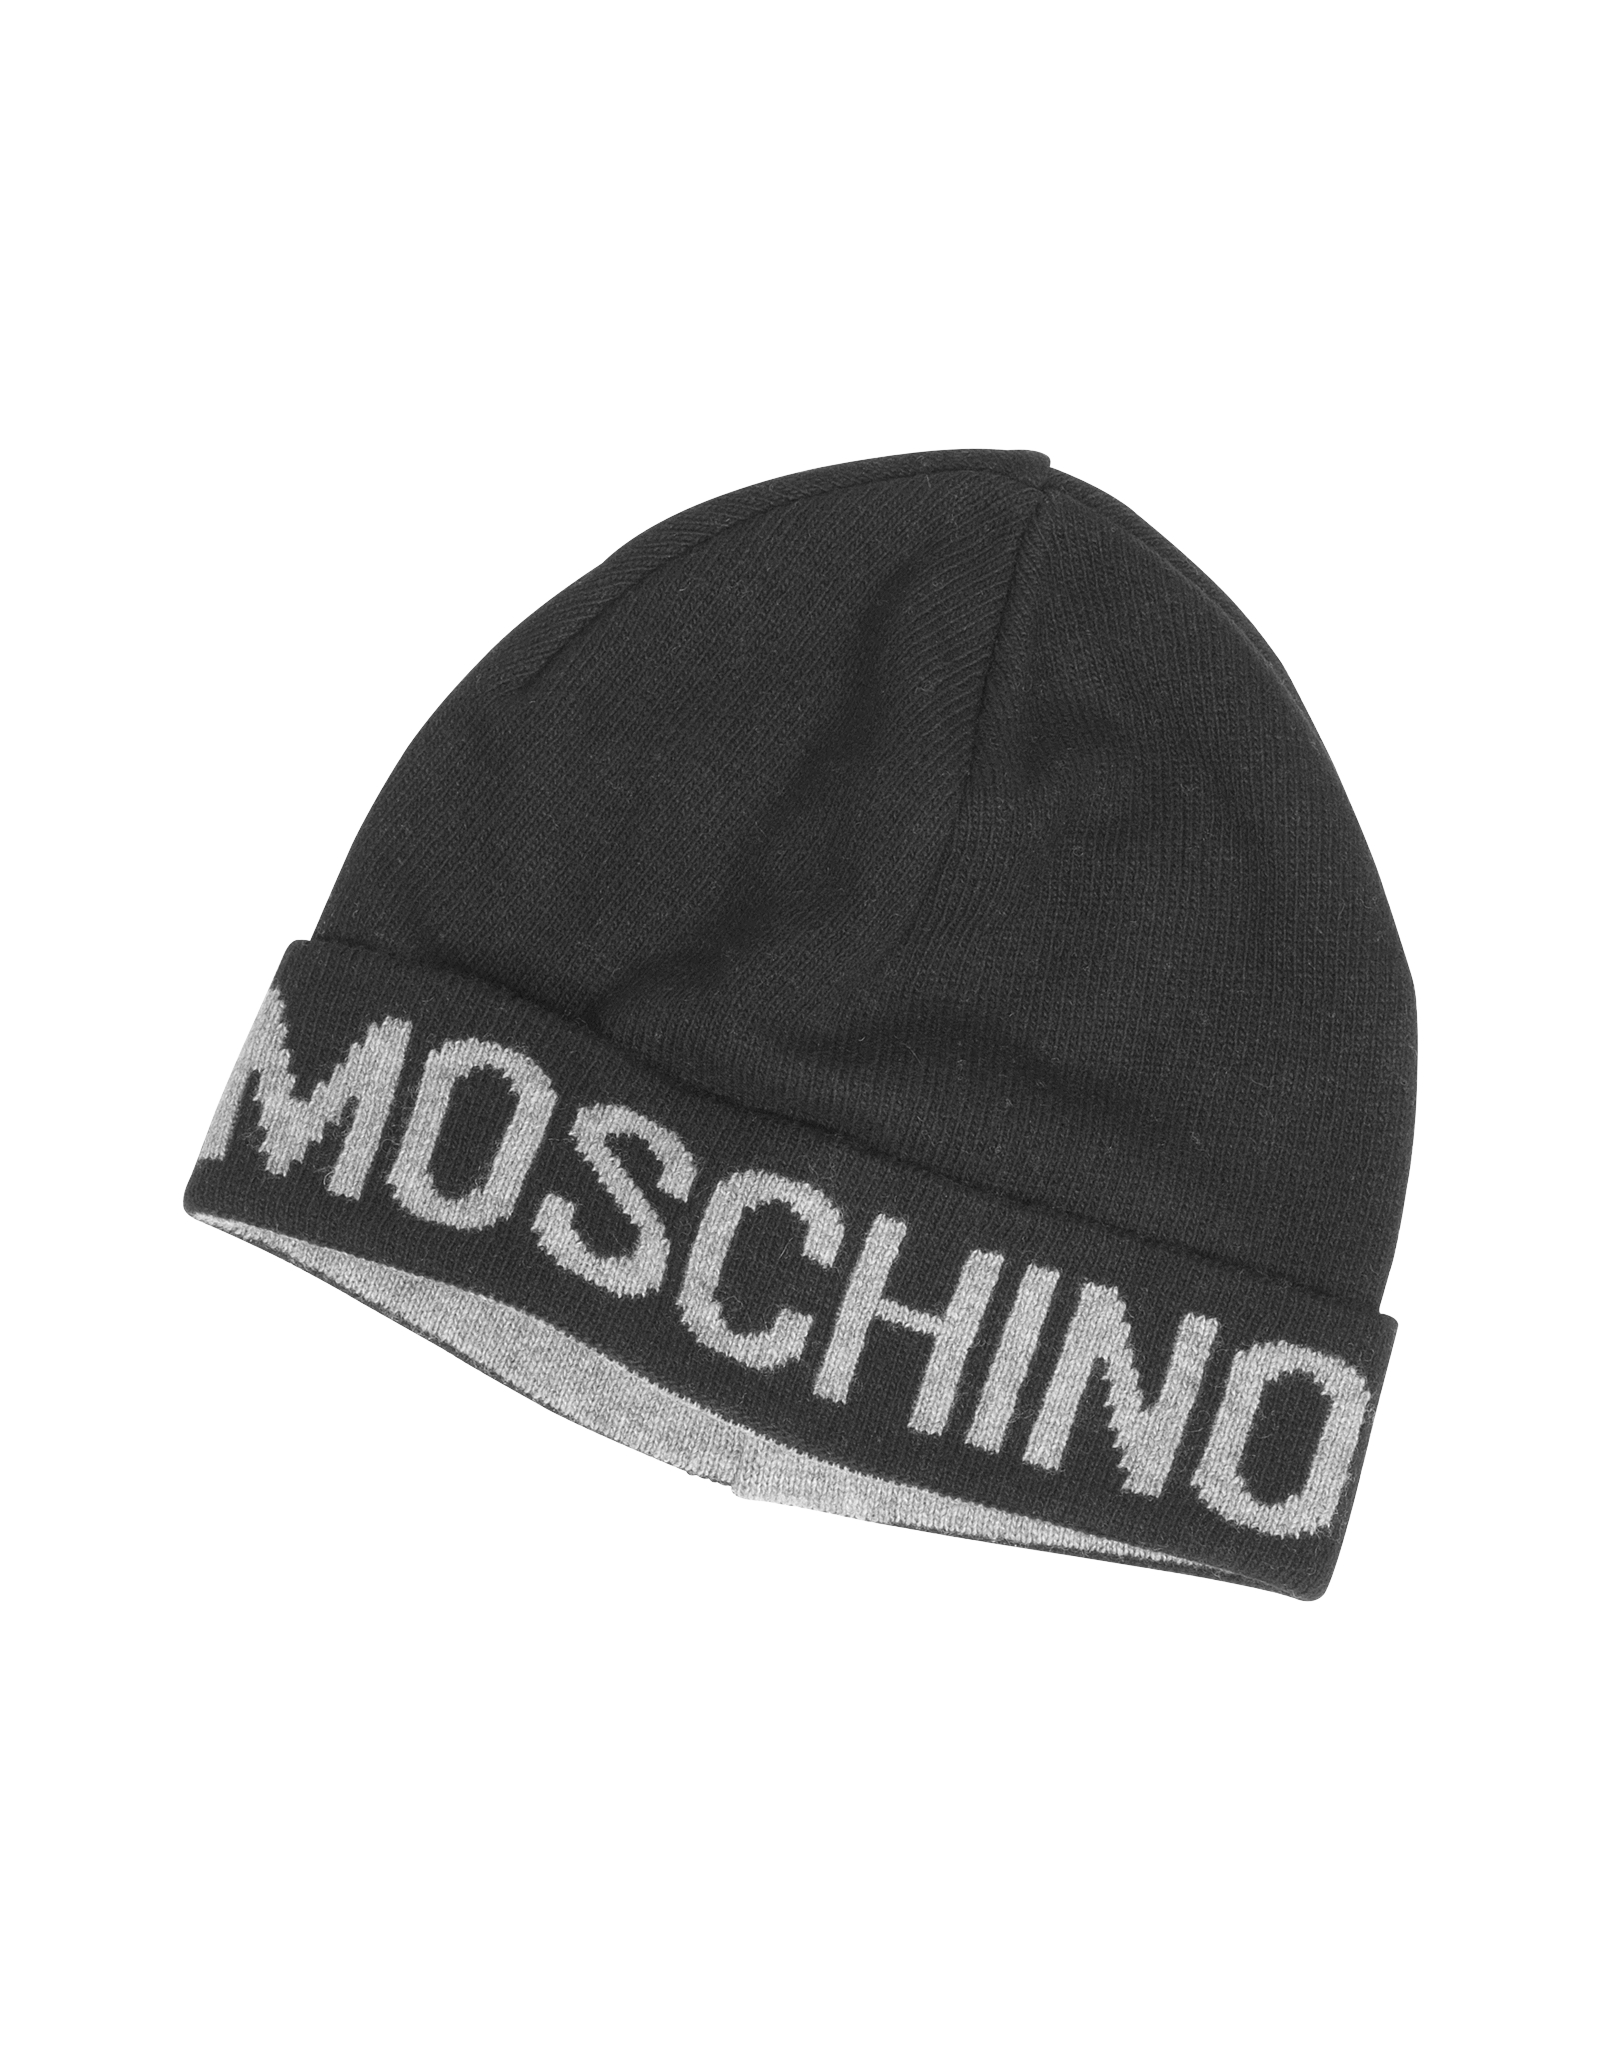 Lyst - Moschino Black Signature Wool Blend Hat in Black for Men 78915e71429